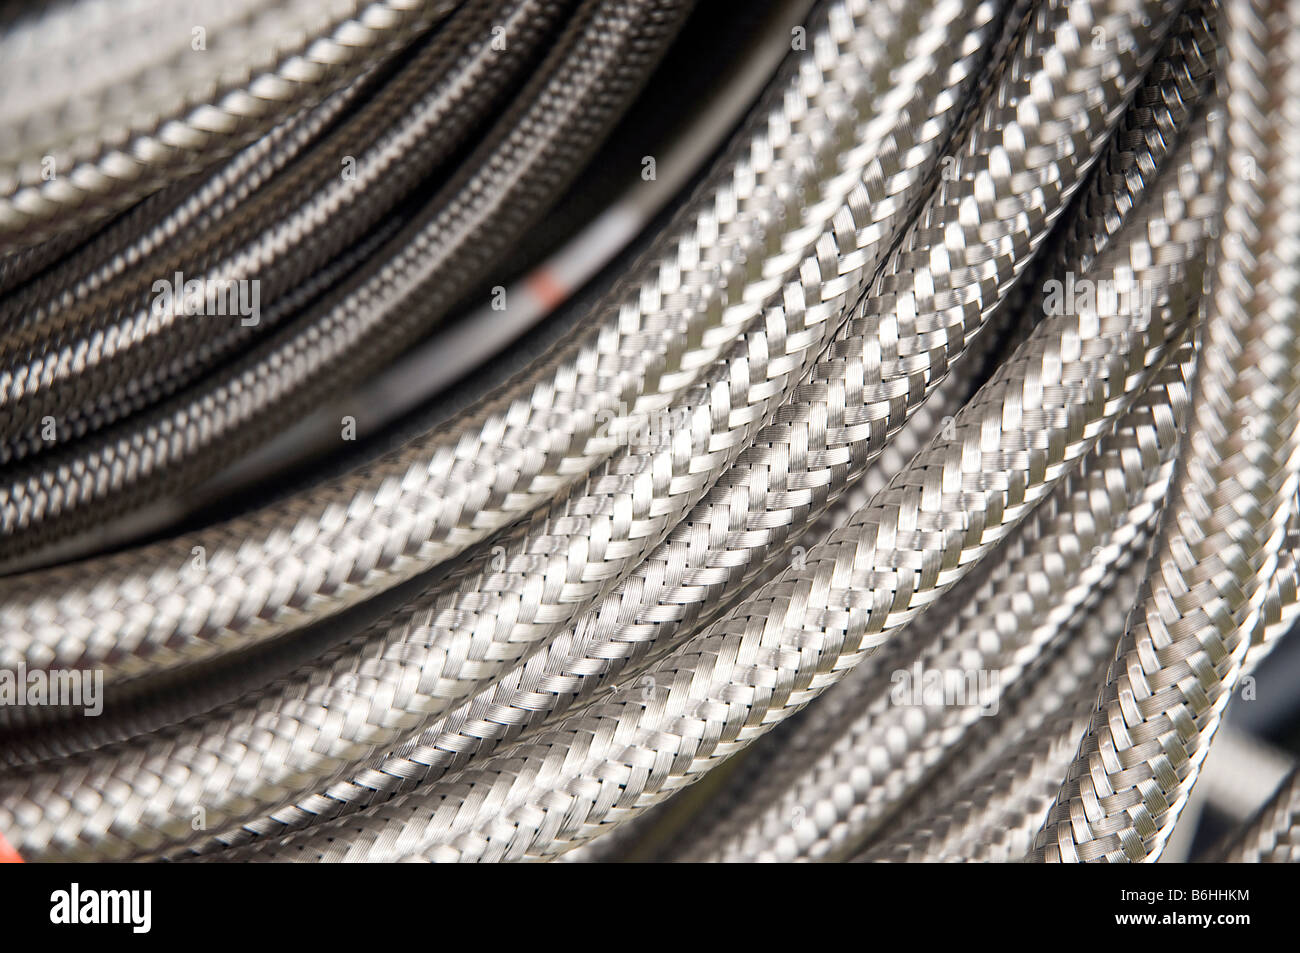 Close up of a coil of reinforced hosepipe - Stock Image